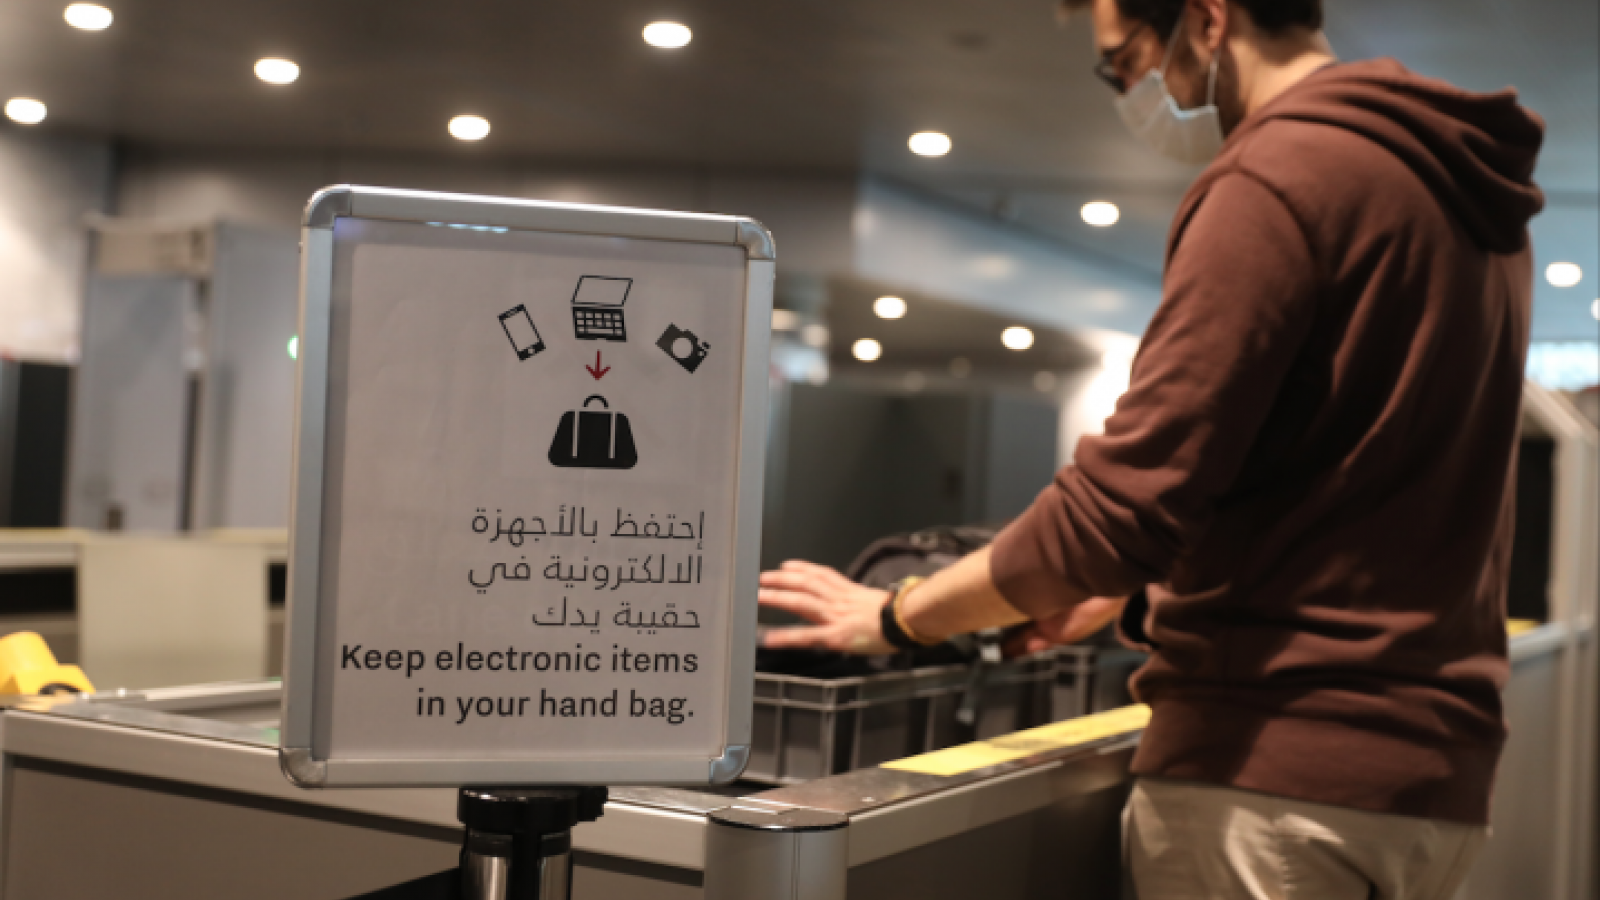 WATCH: HIA's latest technology allows electronic items to remain in hand baggage during screening